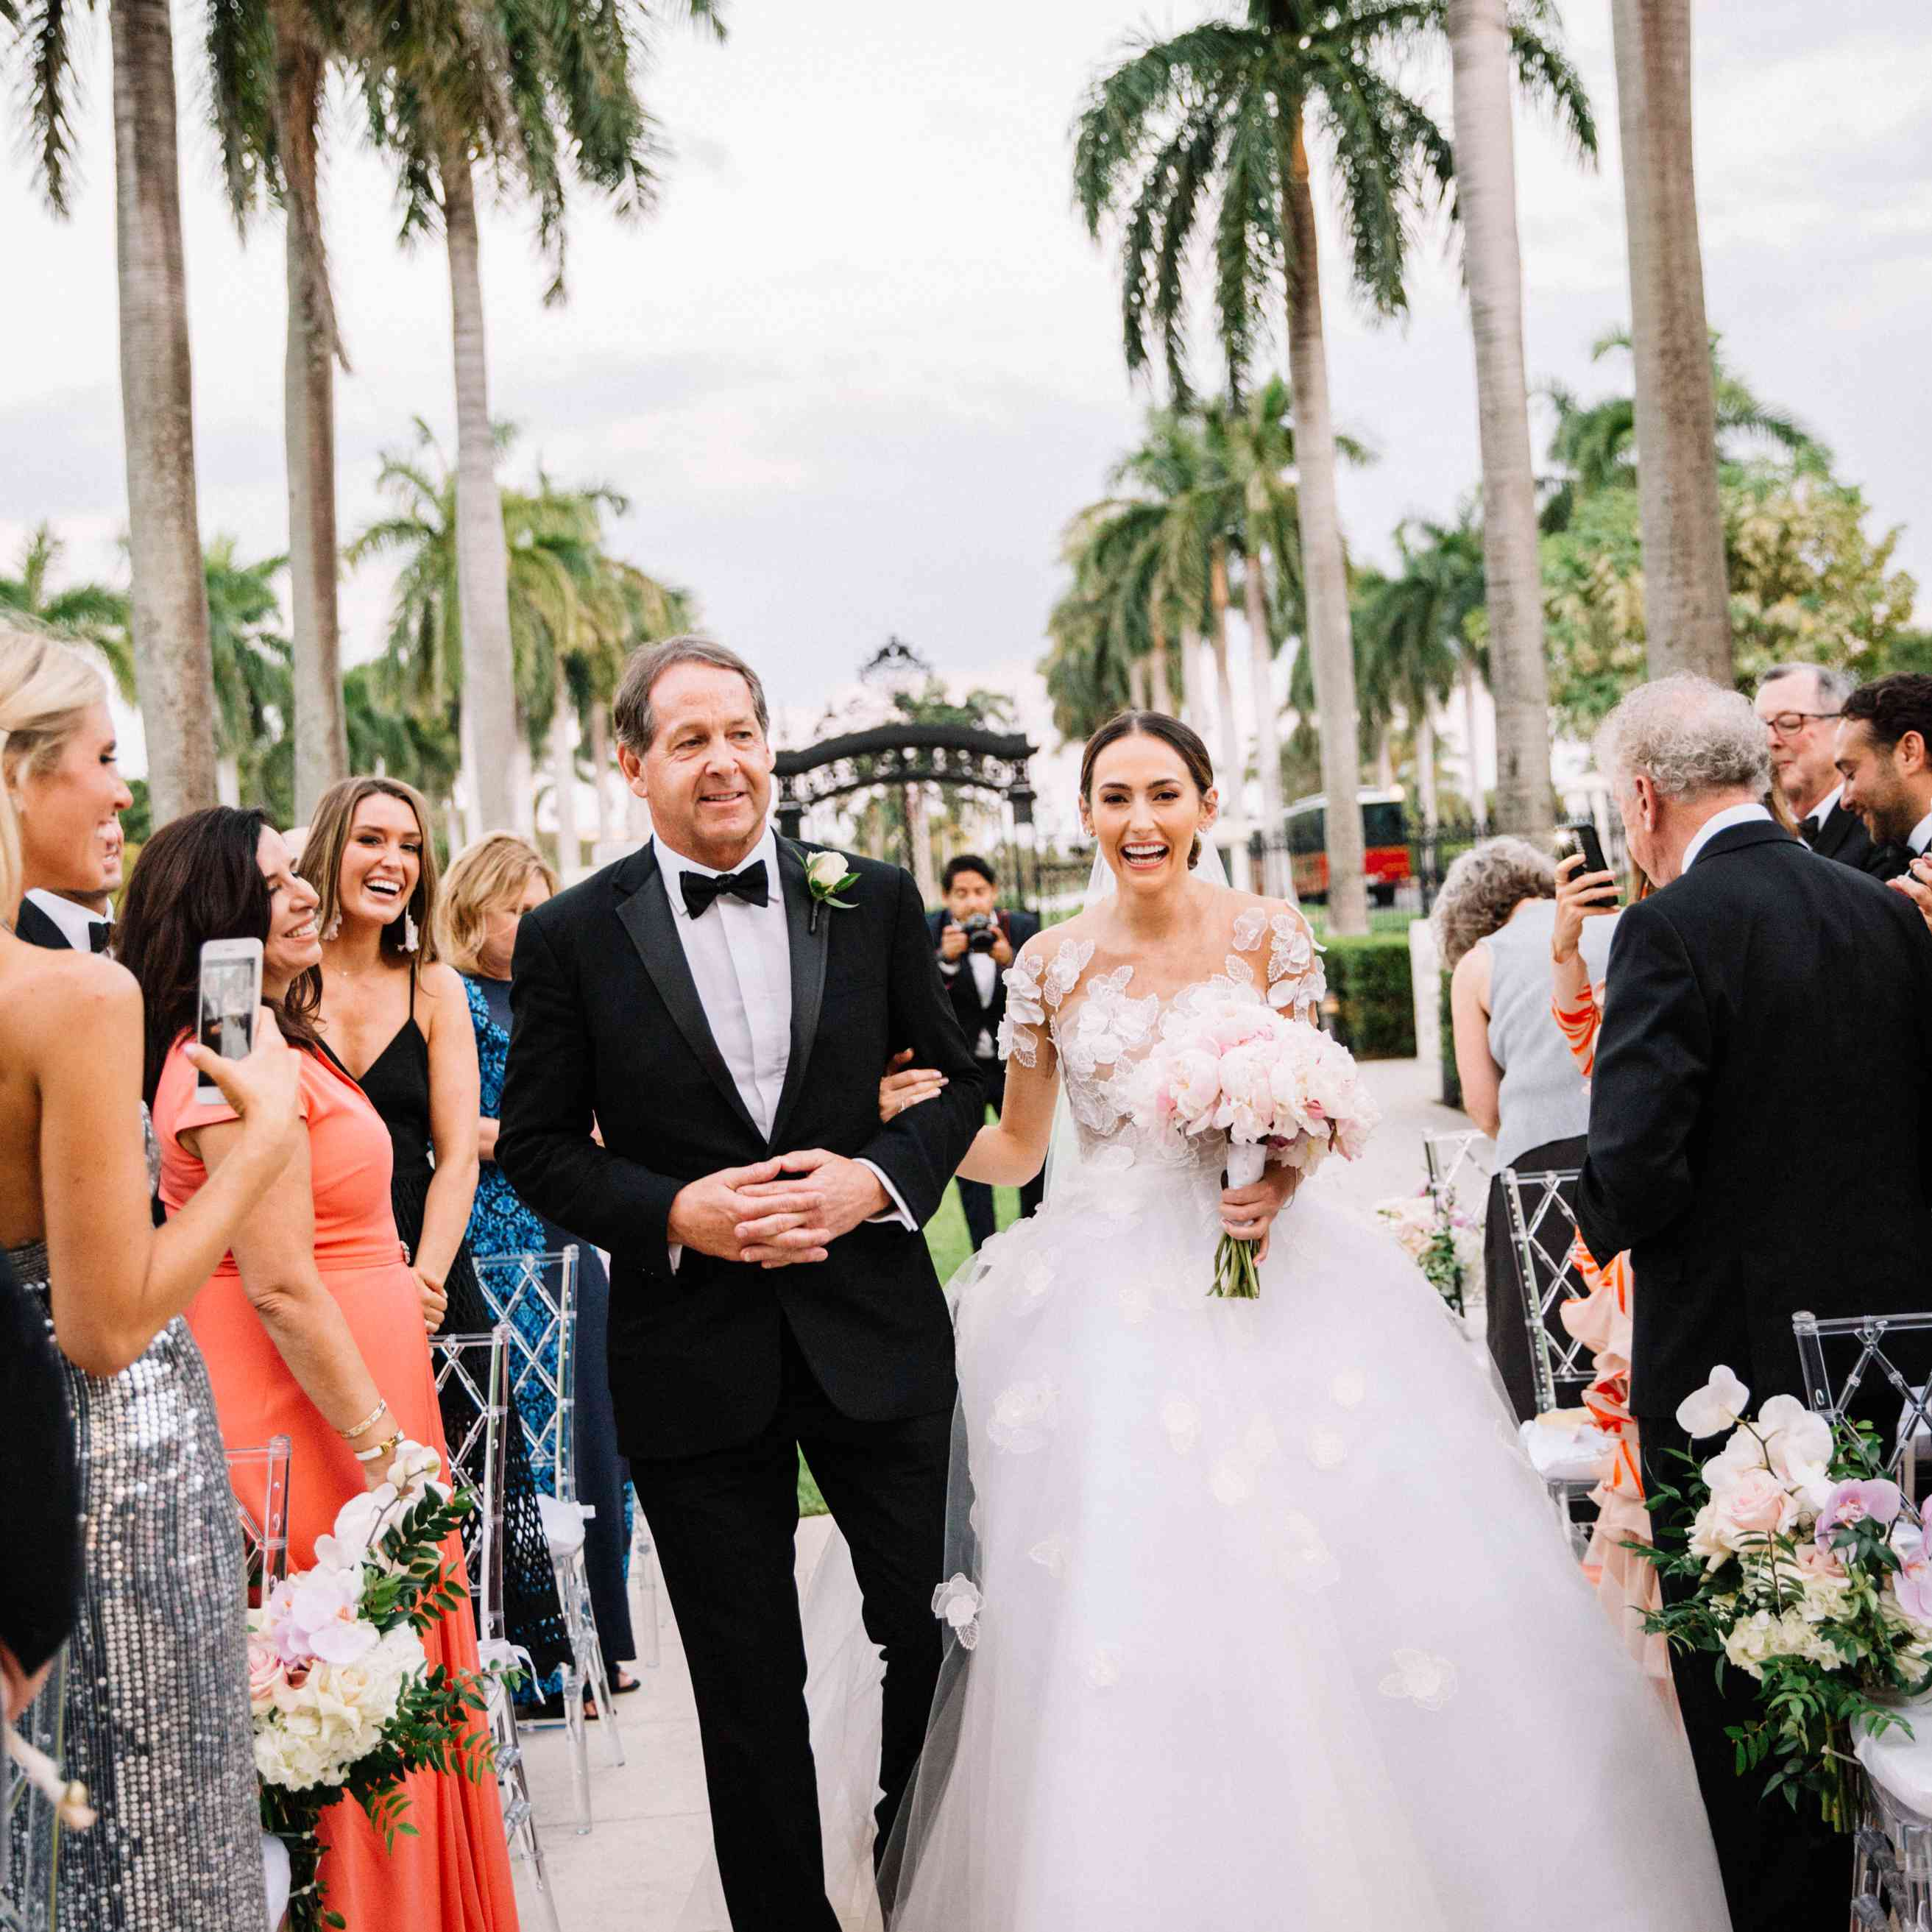 One Couple's Grand Palm Beach Wedding at the Flagler Museum